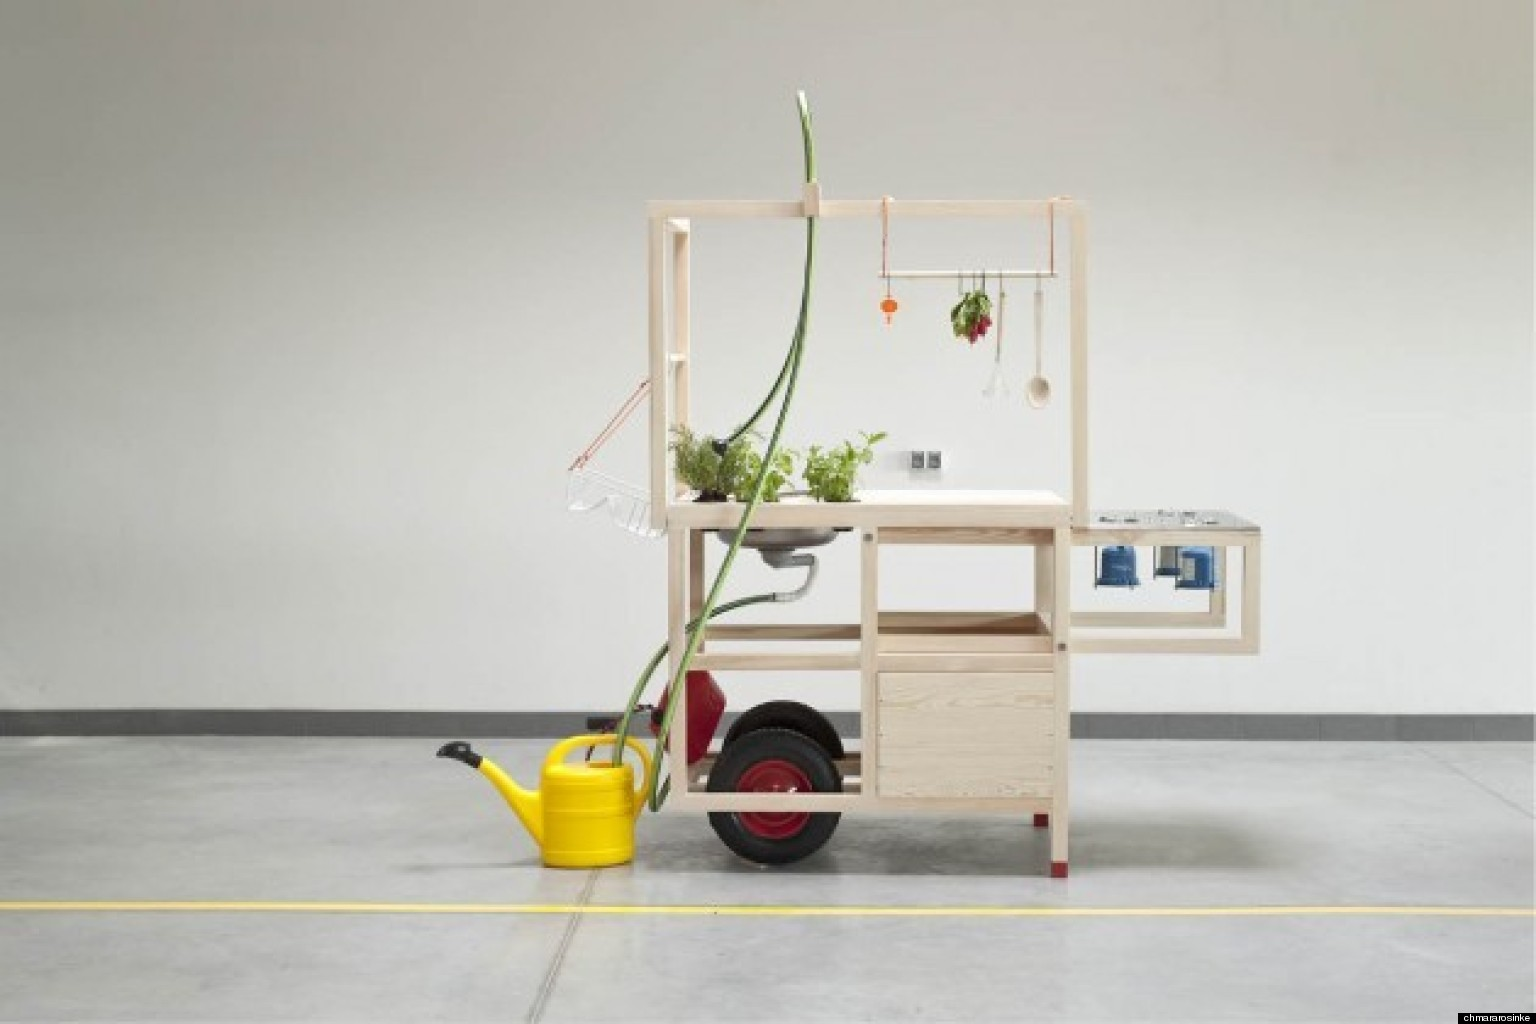 Mobiles Waschbecken Selber Bauen Mobile Kitchen: Now You Can Cook Anywhere (photo) | Huffpost